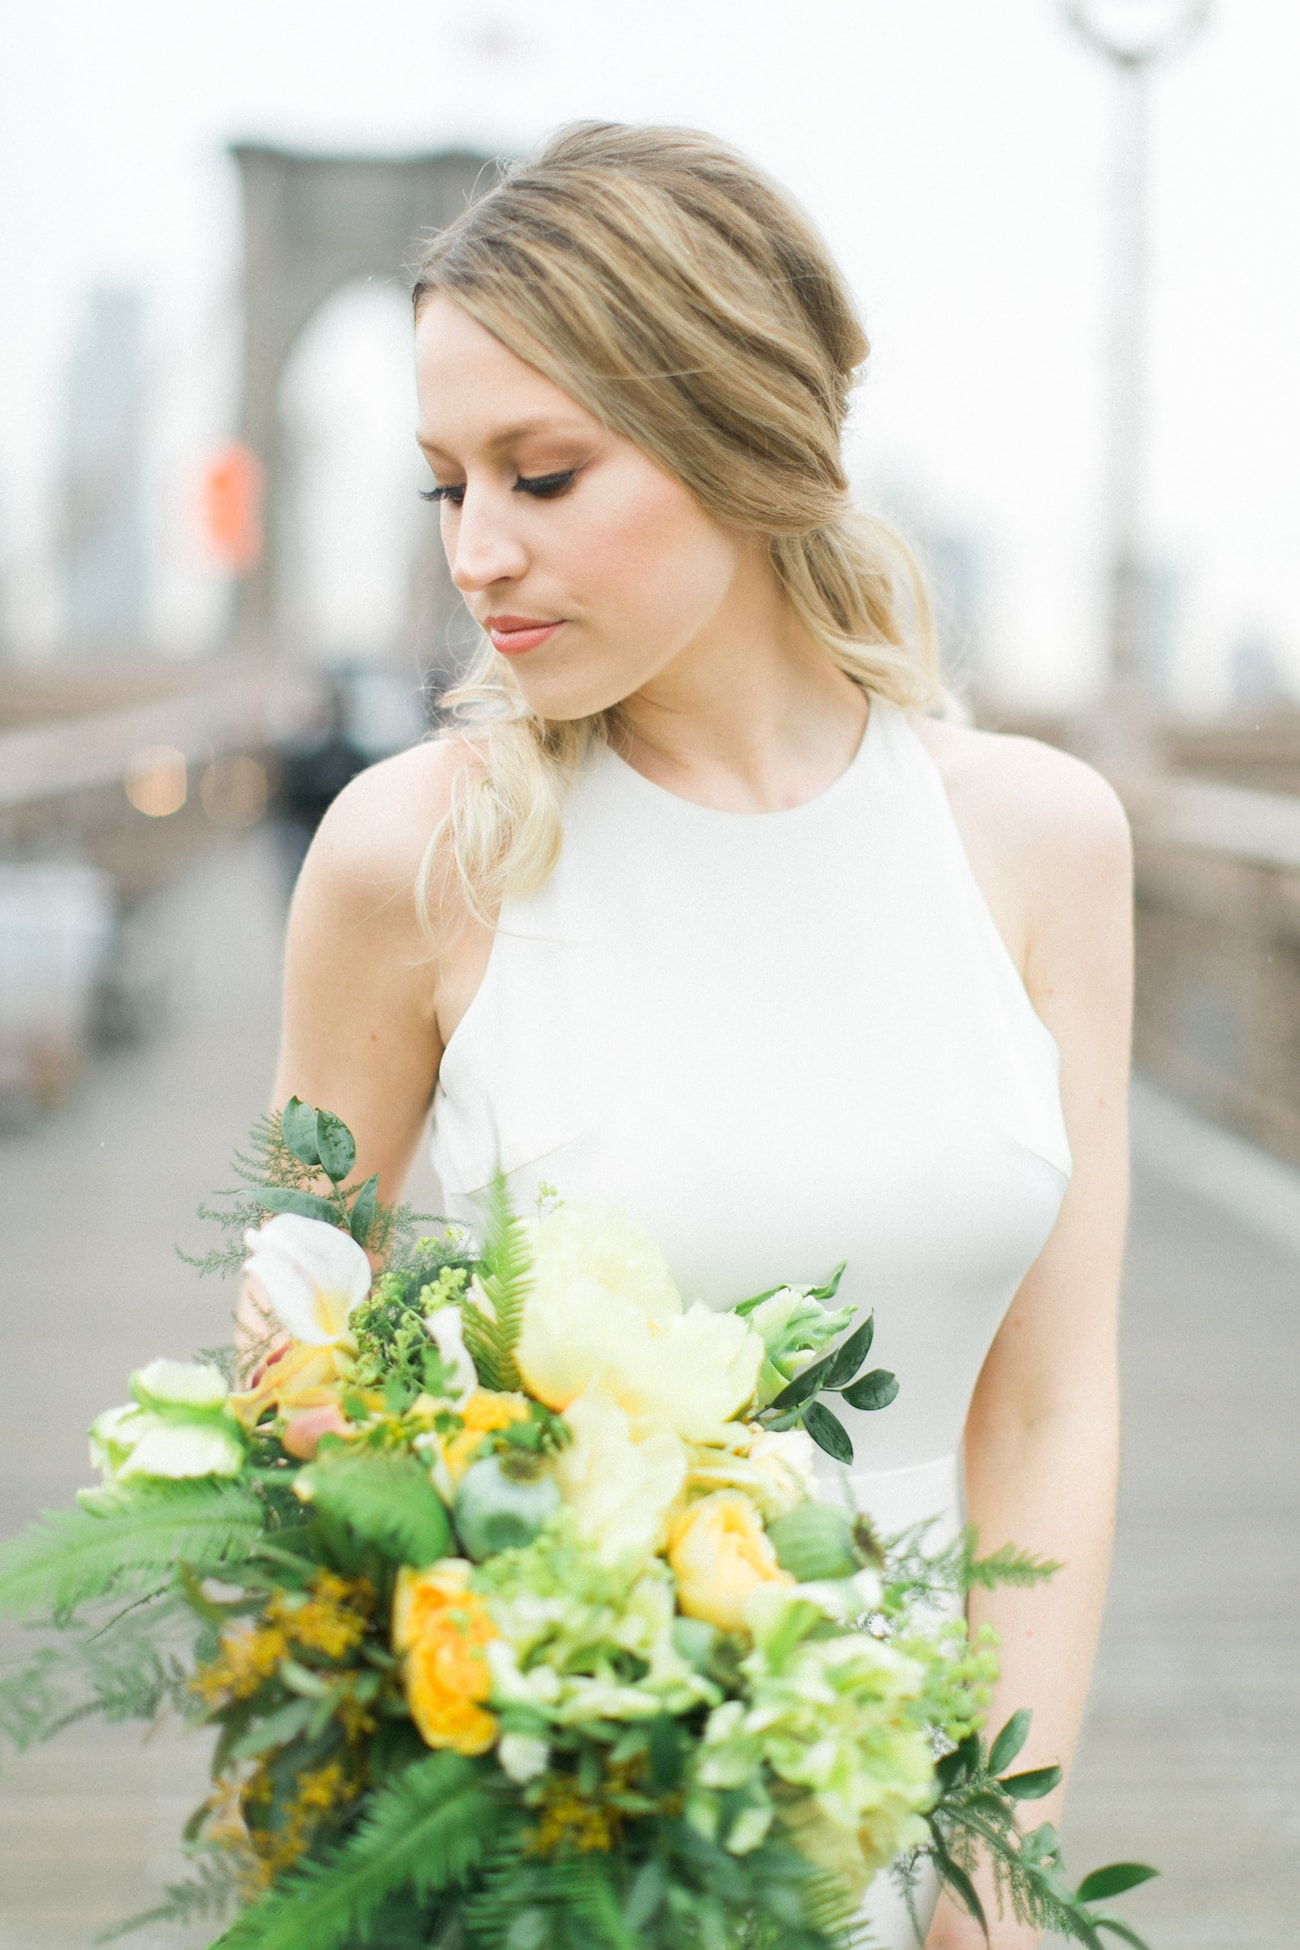 Minimalist Wedding Dress | Credit: Ruth Eileen Photography